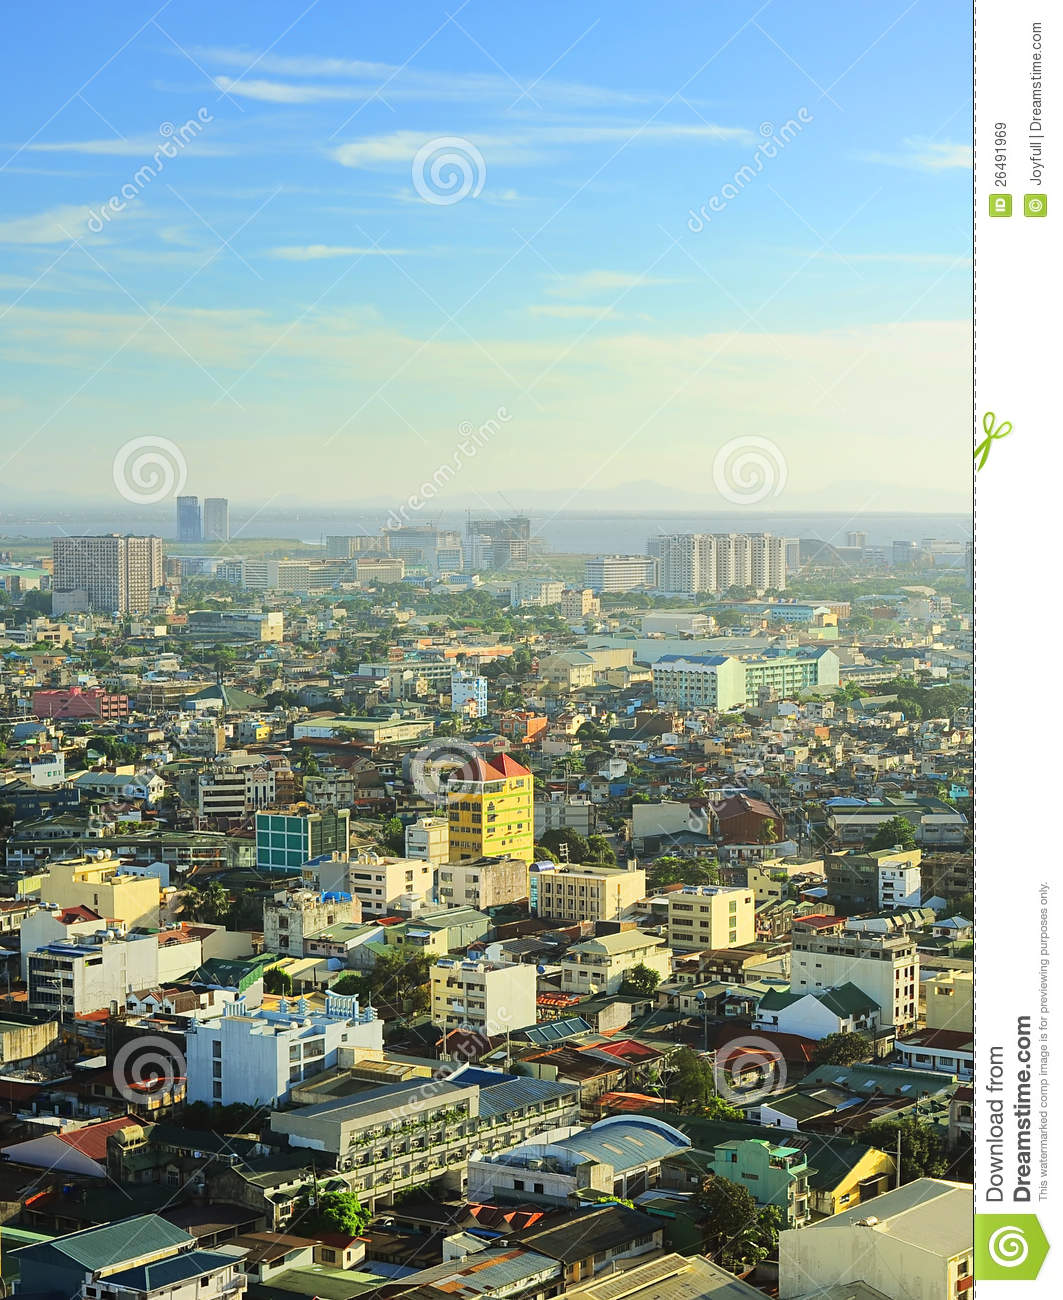 Metro Manila Skyline Aerial Wiring Diagrams Moen S71708 Parts List And Diagram Ereplacementpartscom Stock Image Of Lifestyles Luzon 26491969 Rh Dreamstime Com Skyway New